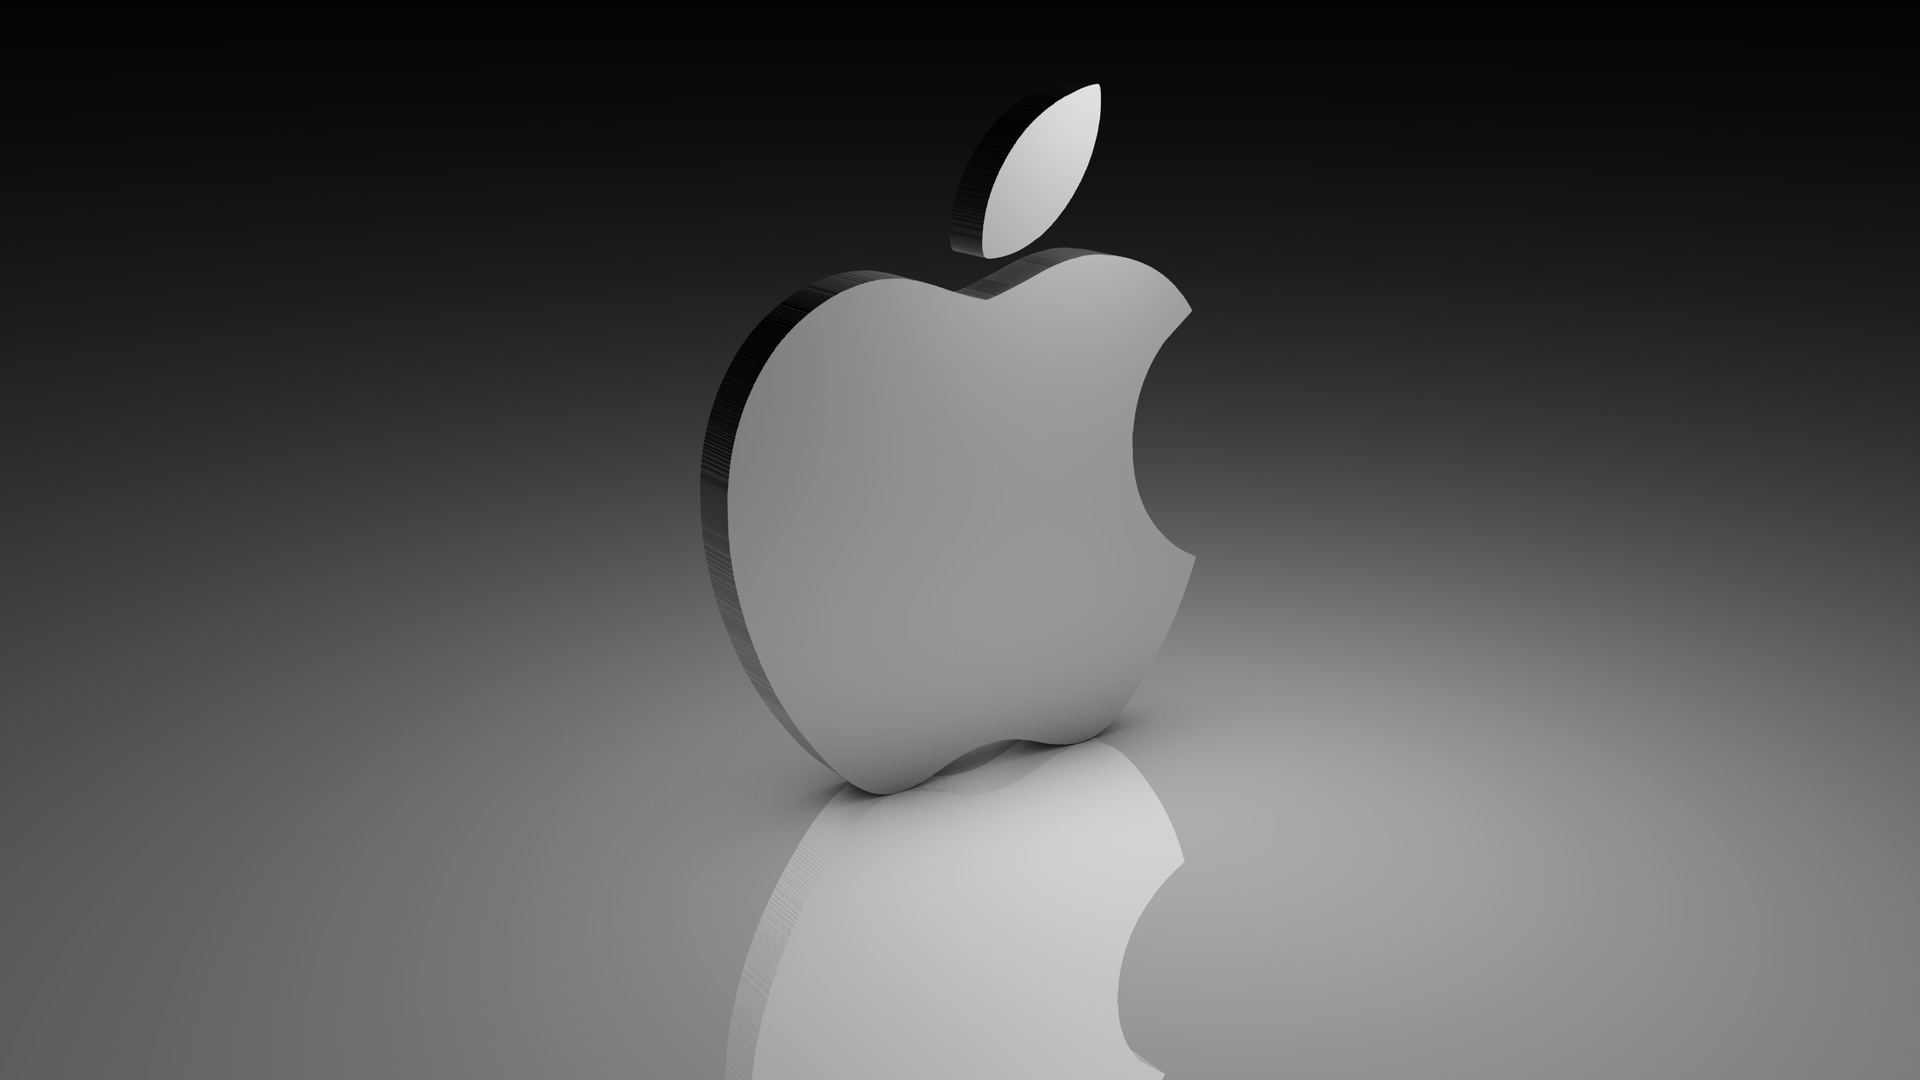 Apple Logo Wallpaper HD Download